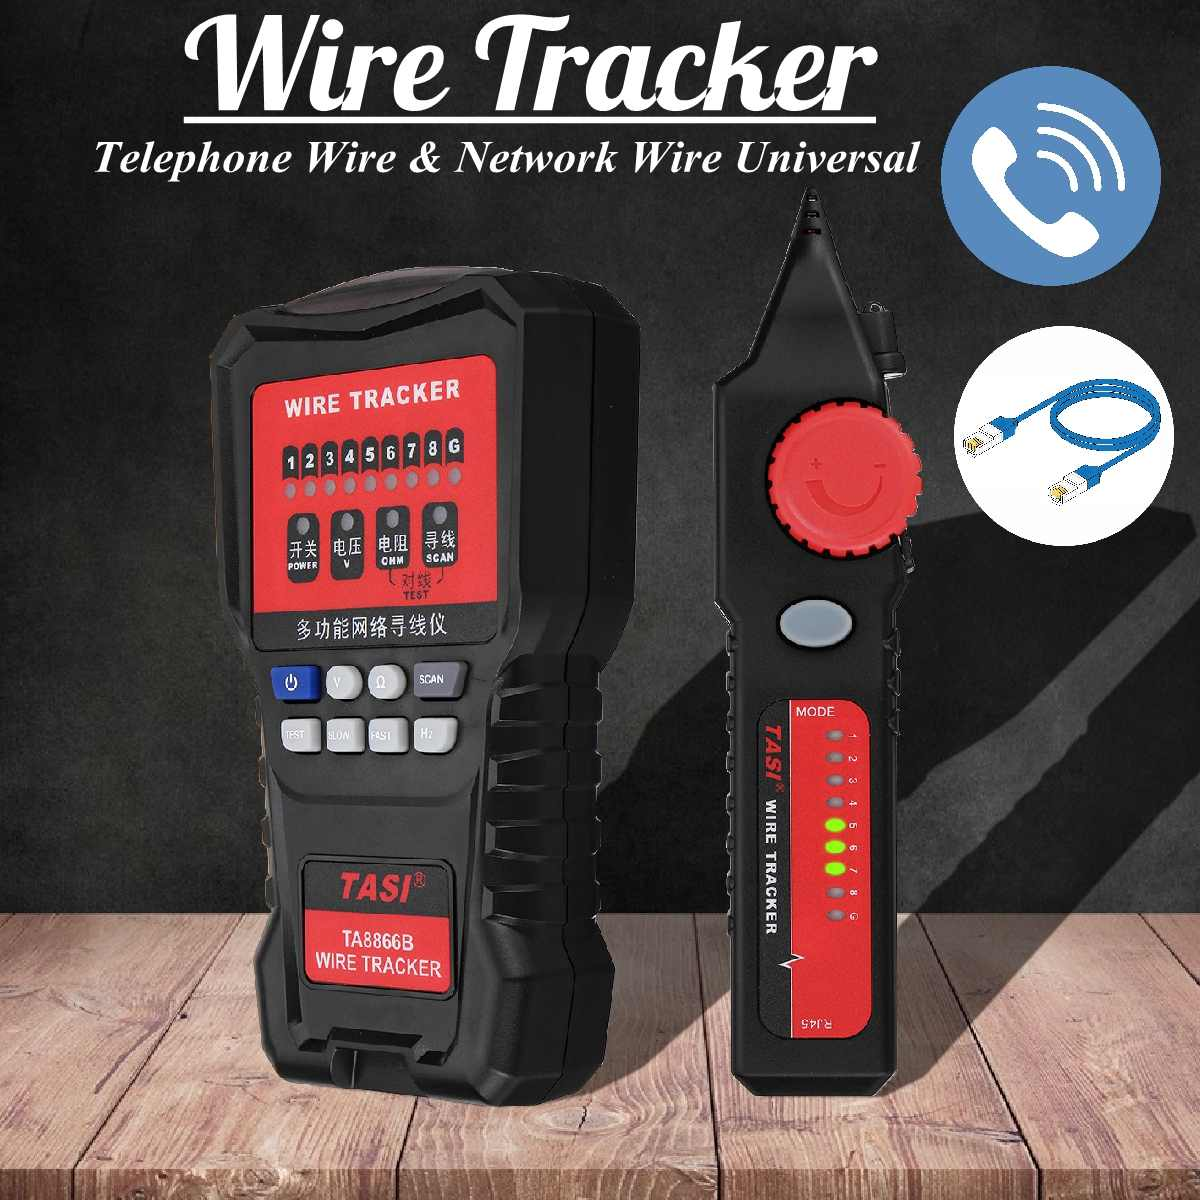 LEORY Newstyle Cable Detector TA8866B Handheld Rapid LAN Network Cable Tester Line Finder Wire Tracker Tool Network Line Finder